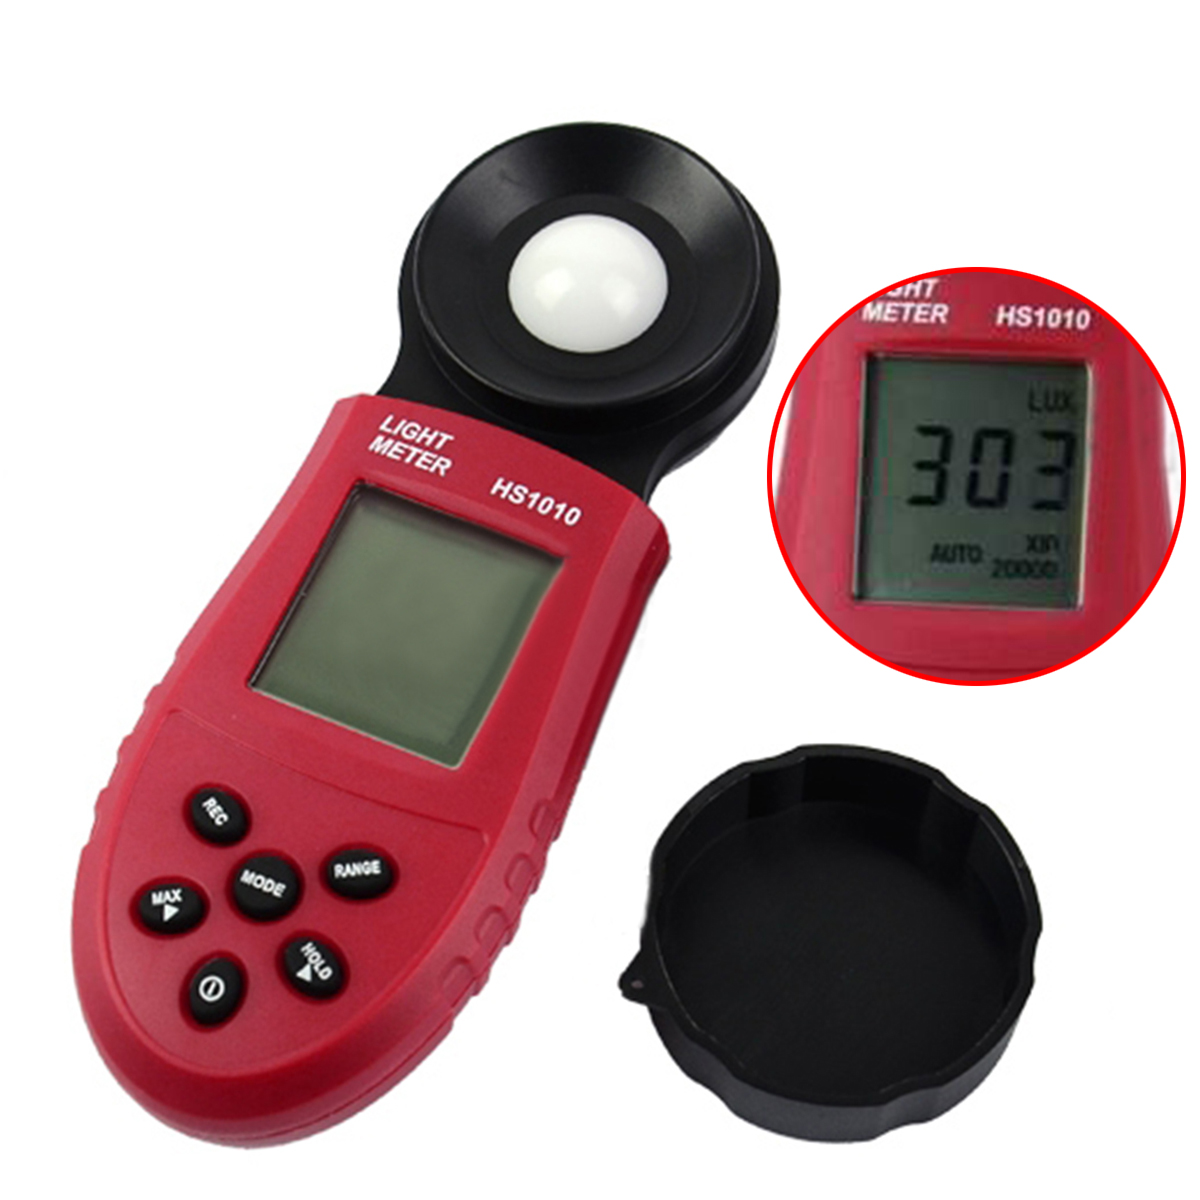 цены 1pc Precision 200,000 Lux Light Meter Digital Light Meter Luxmeter Lux/FC Meter Luminometer Photometer Tester